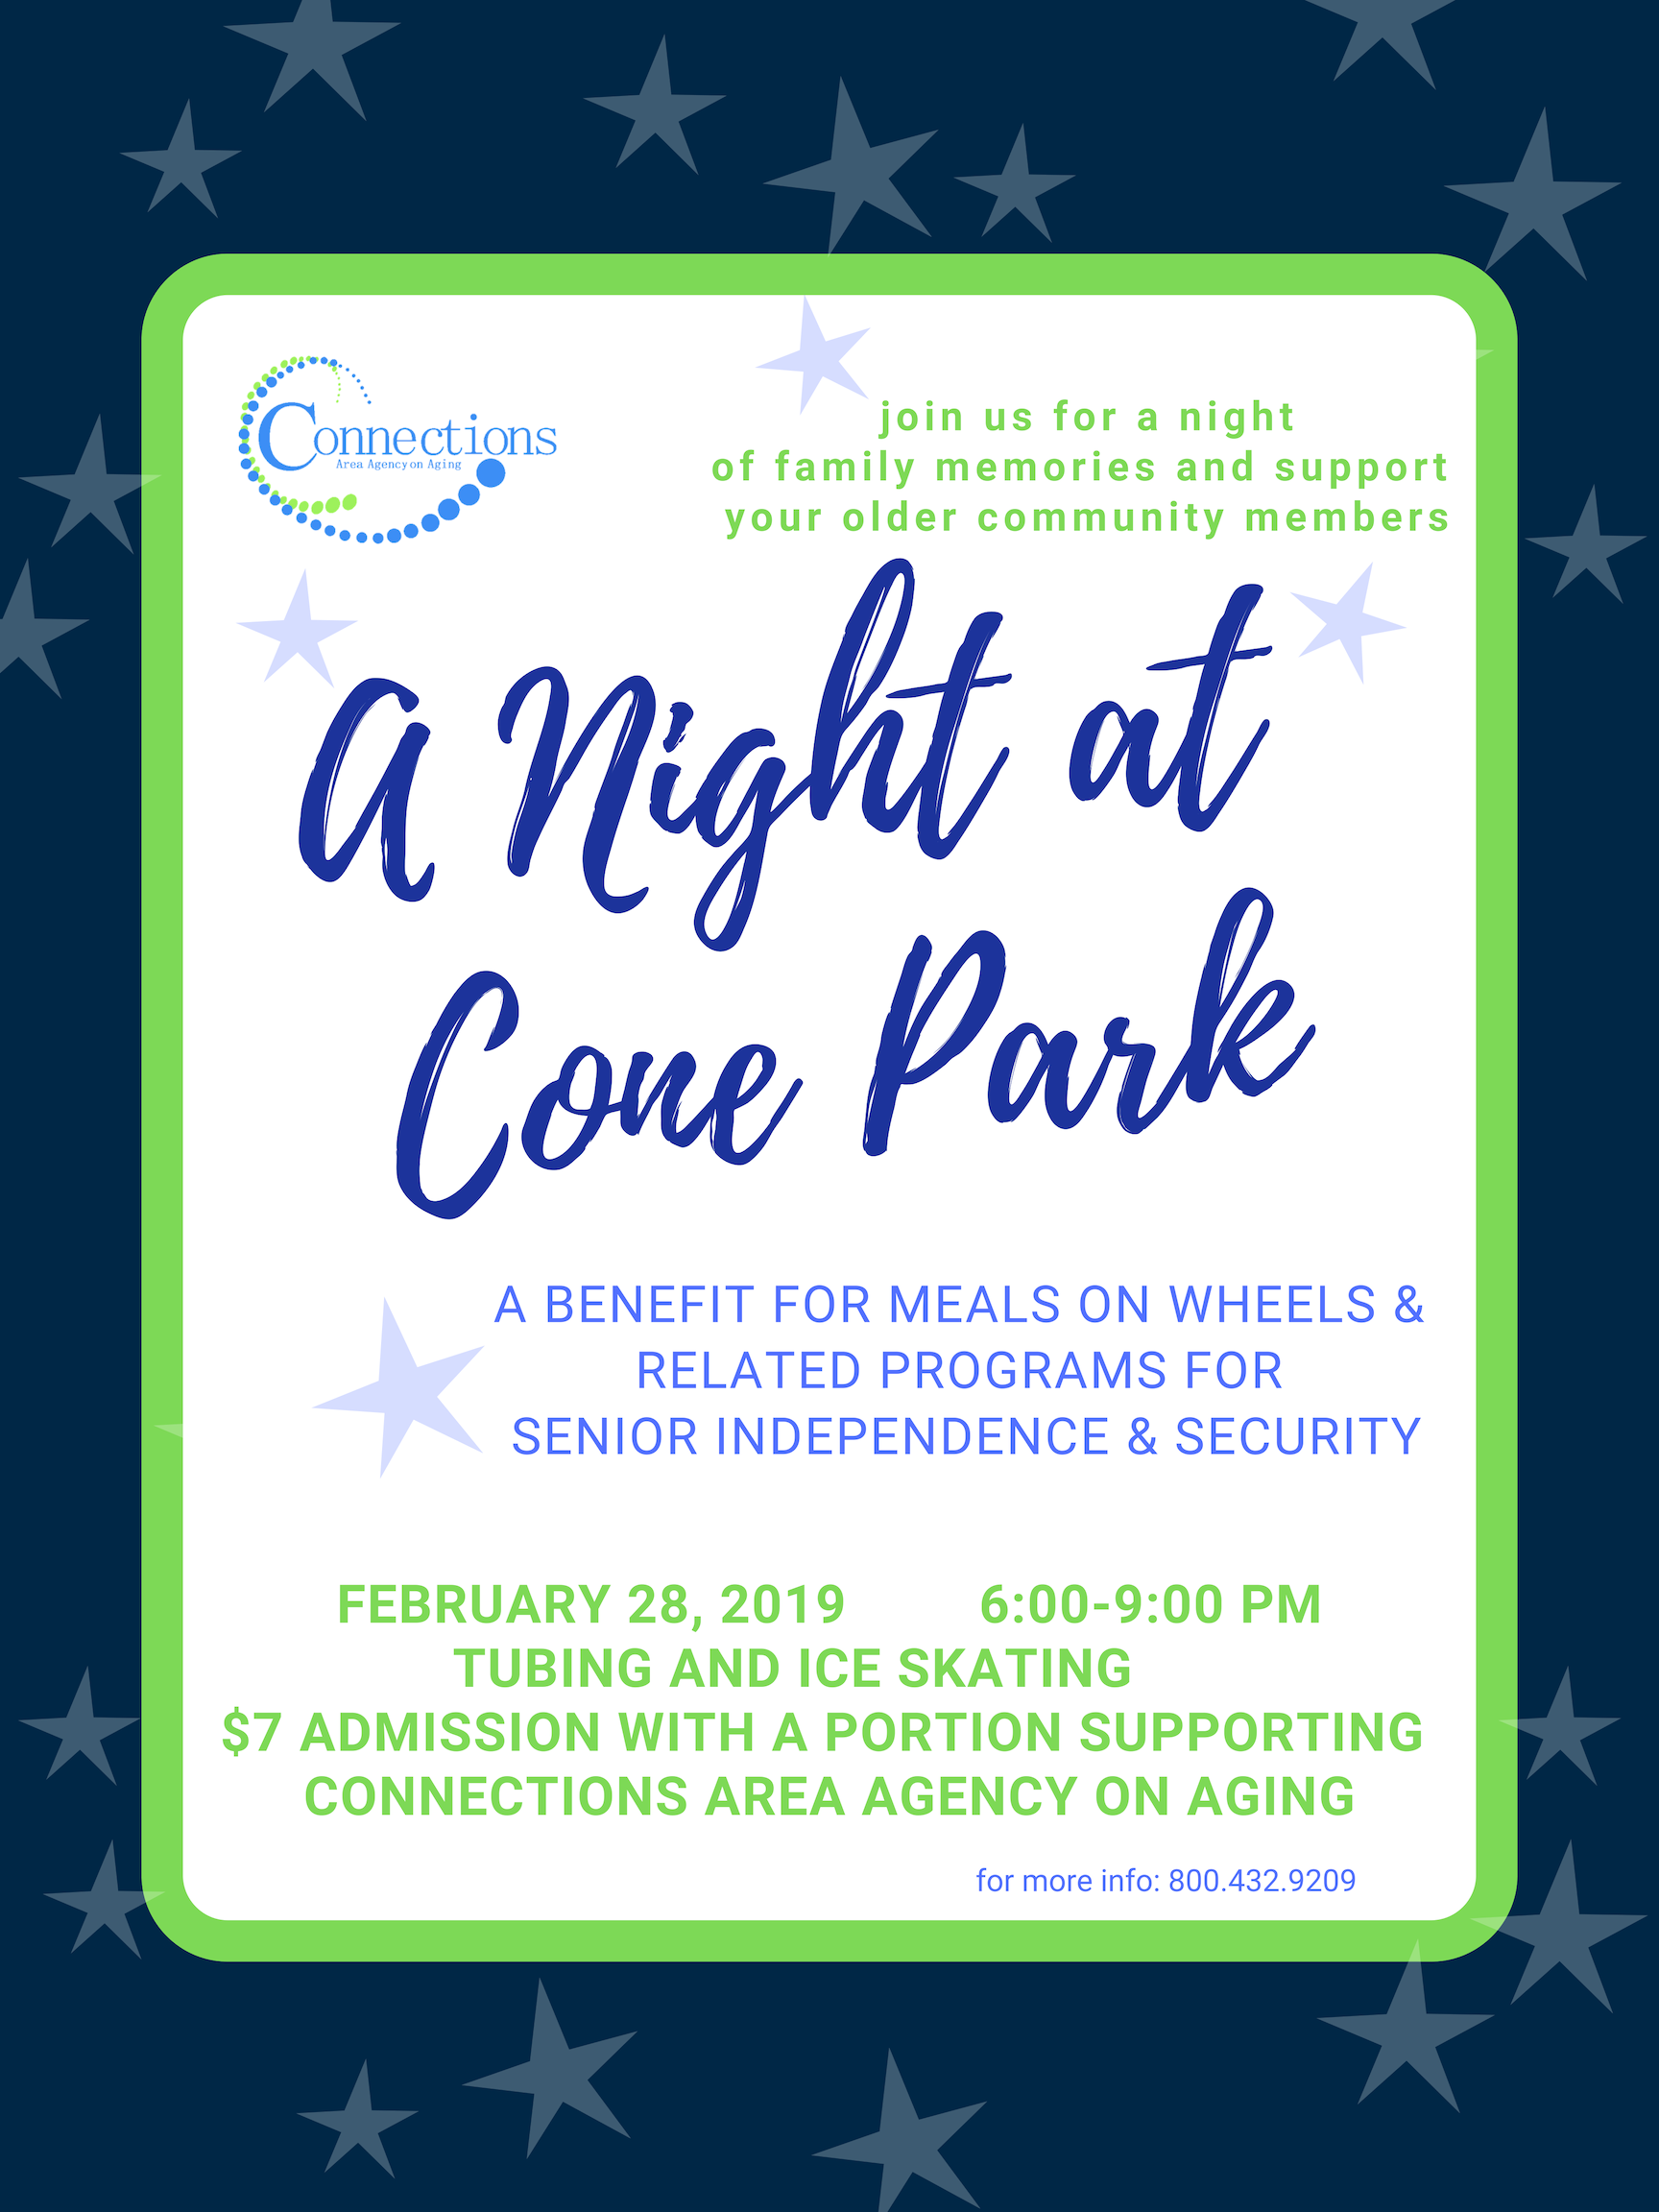 Sioux City: A Night at Cone Park Benefit